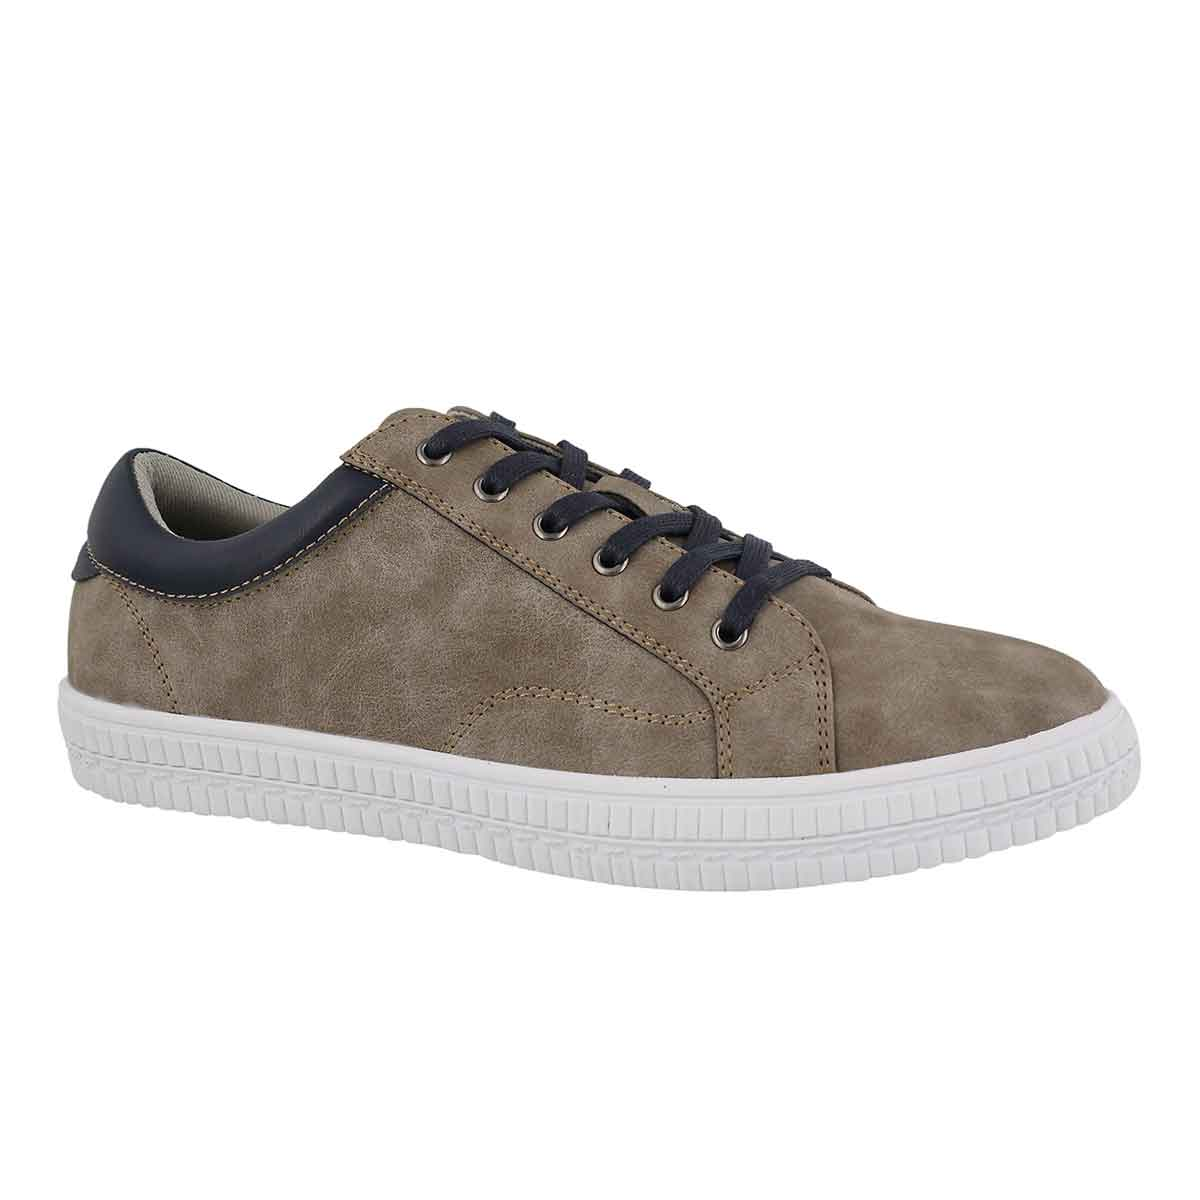 Men's JORGE taupe lace up sneakers